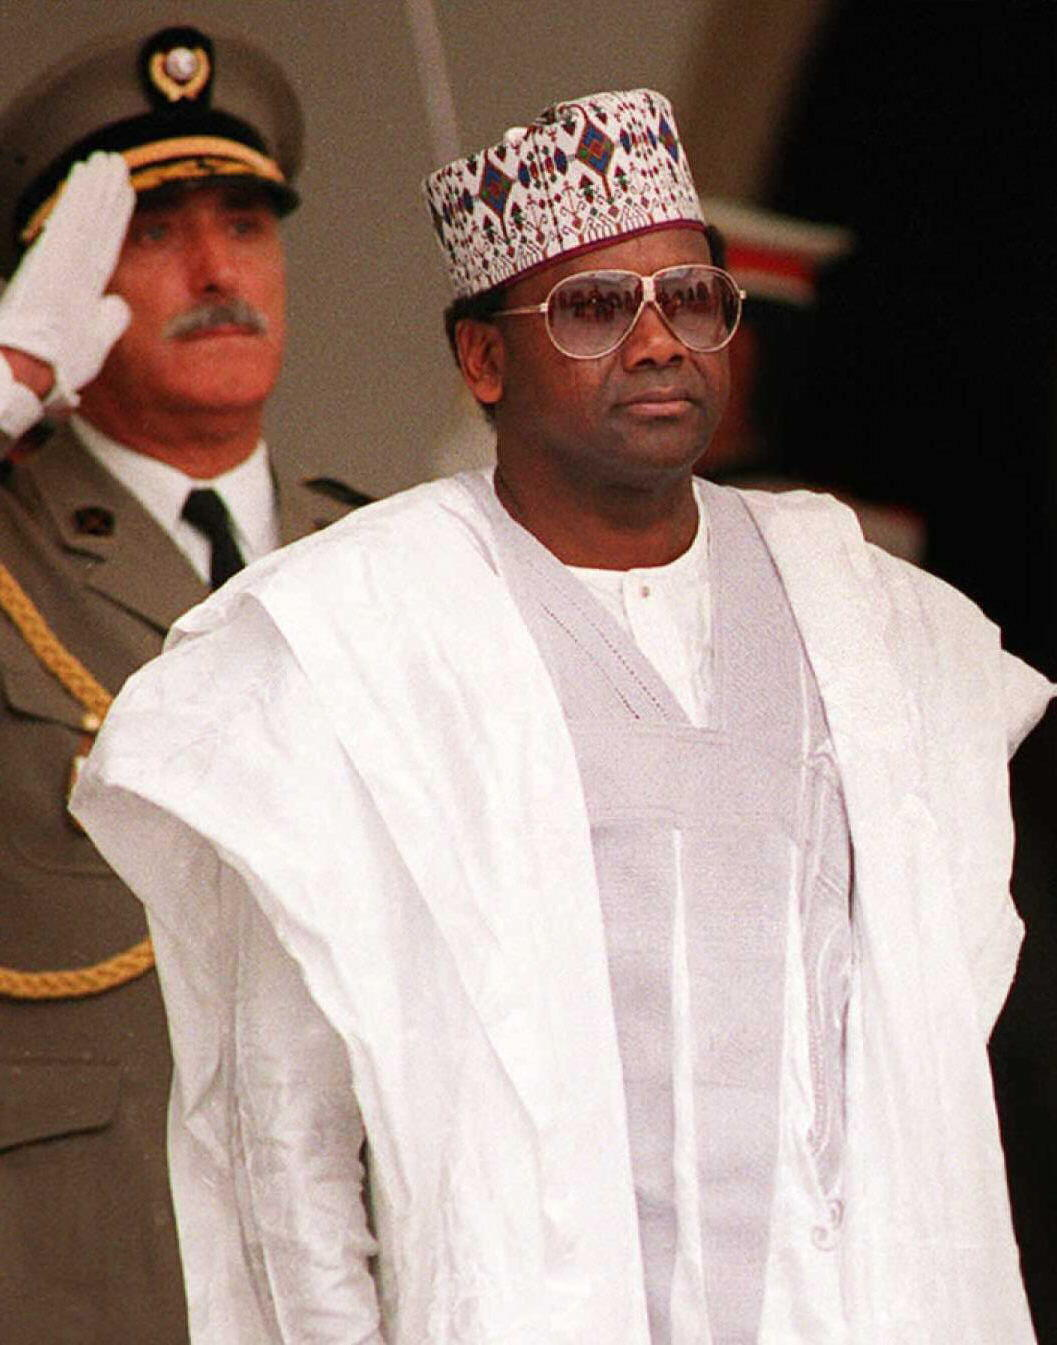 Sani Abacha's death in 1998 paved the way for a return to civilian government in Nigeria. File photo dated June 1993.